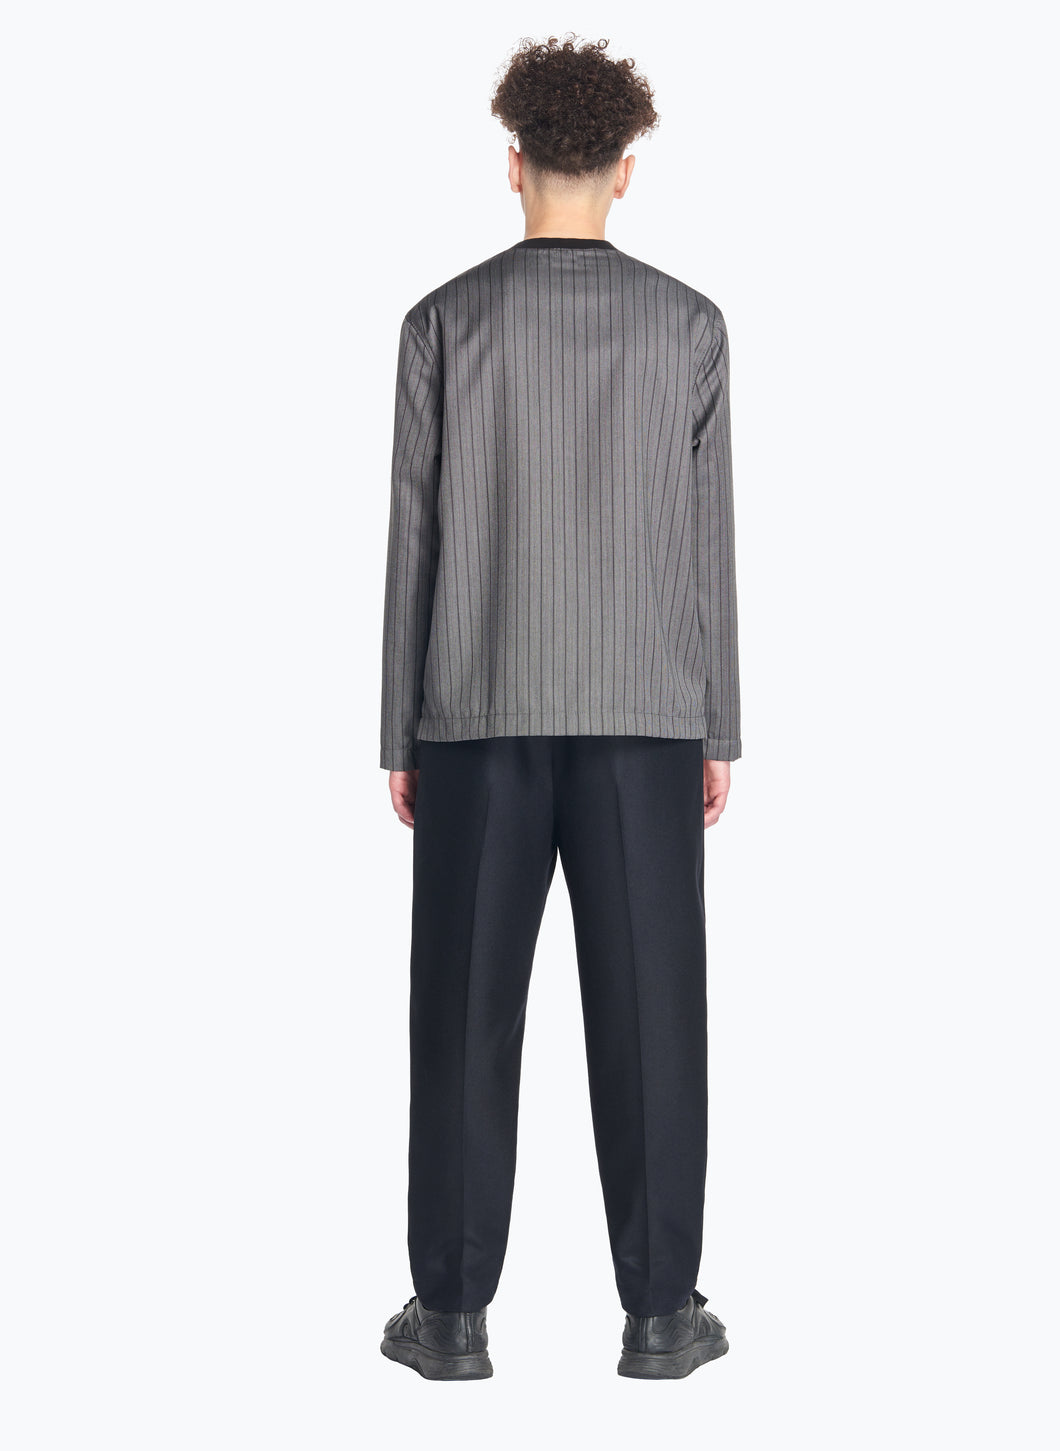 Long Sleeve T-Shirt with Edge-Ribbed Collar in Grey Striped Cool Wool